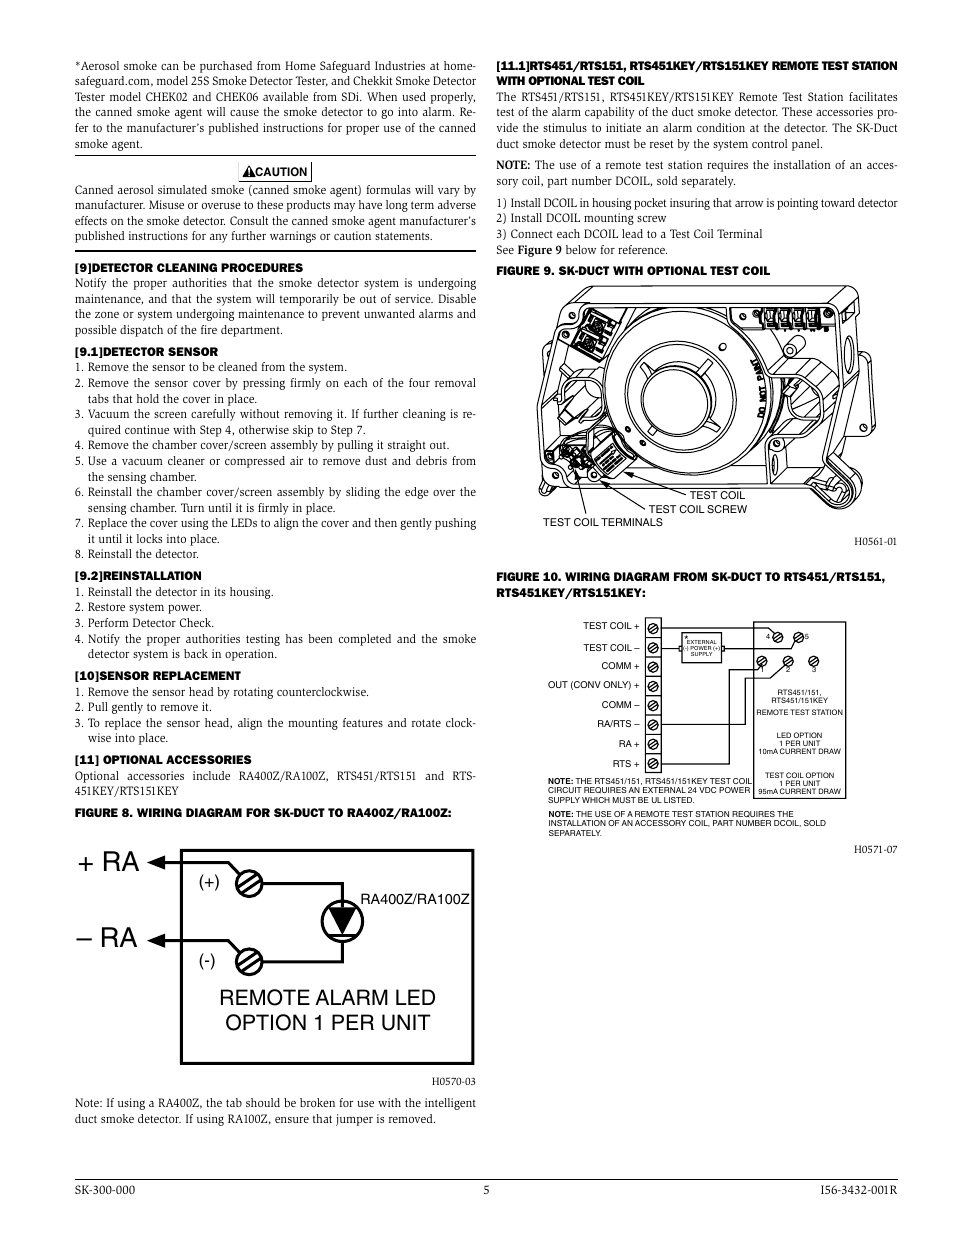 Silentknight sk duct addressable photoelectric duct detector page5?resize\\\\=665%2C861 cool xfinity wiring diagram pictures wiring schematic ufc204 us on comcast wiring diagrams